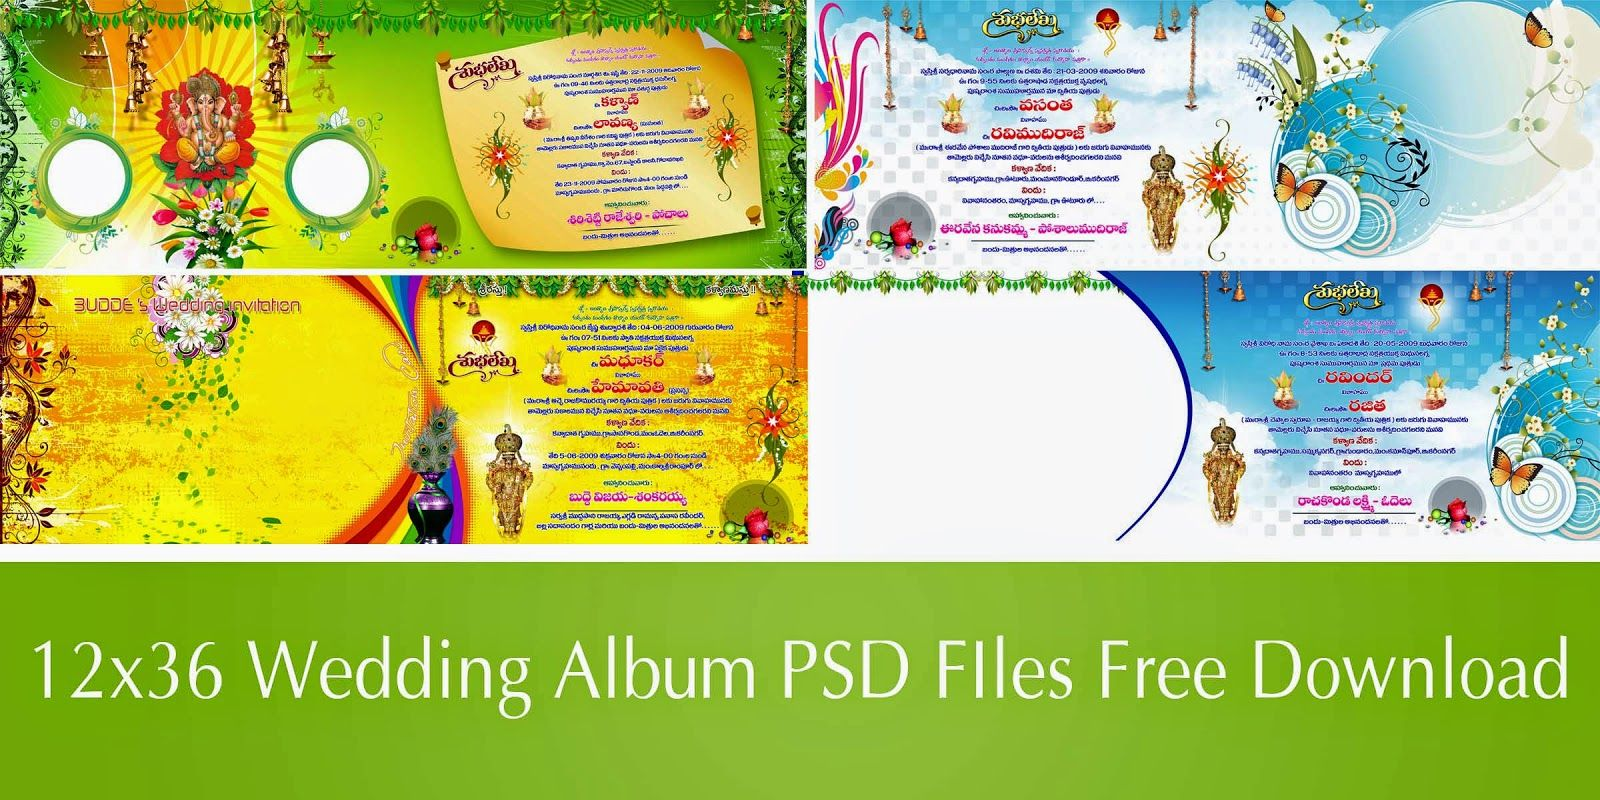 Digital banner design for psd files - Naveengfx Com 12x36 Album Psd Files Free Download